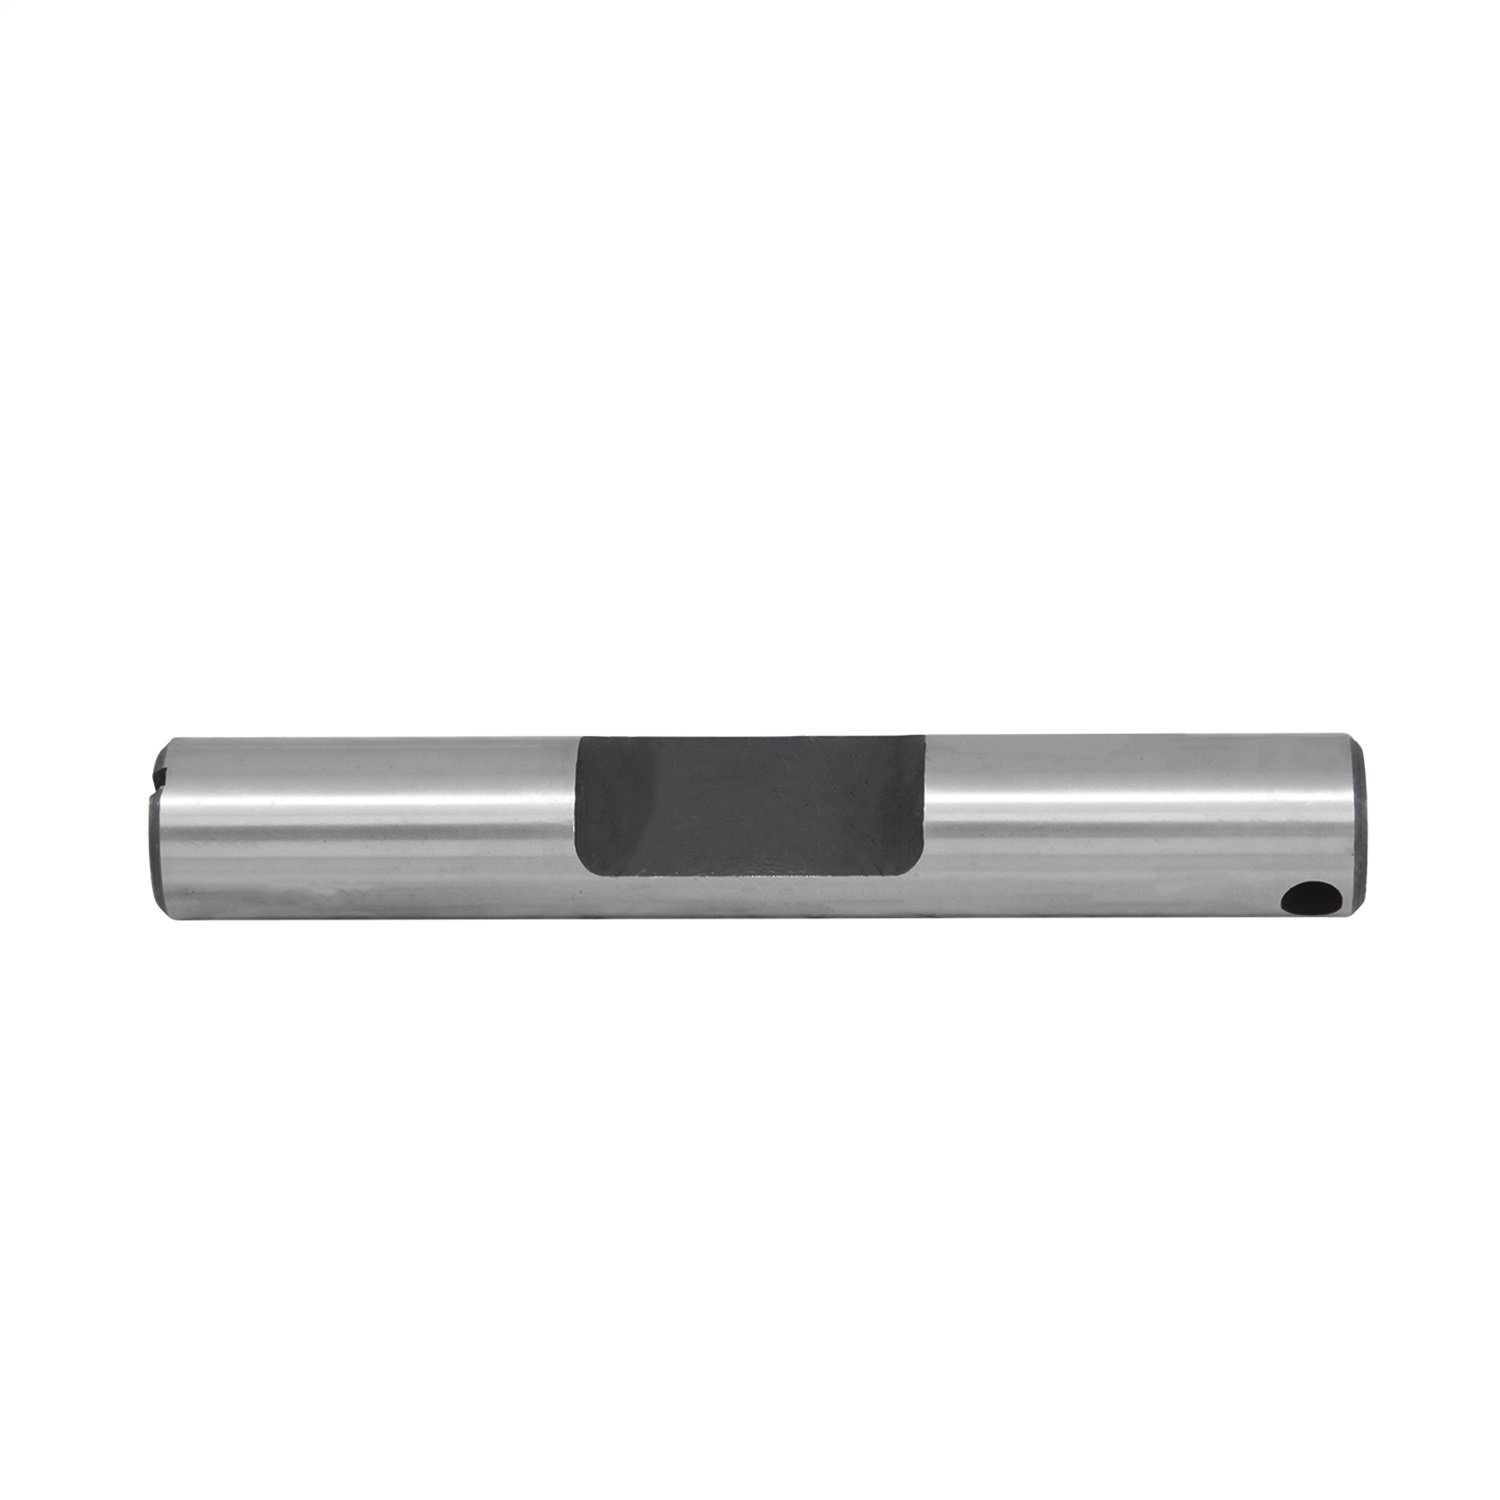 Yukon (YSPXP-053) Notched Cross Pin Shaft for GM 12-Bolt Car/Truck Differential